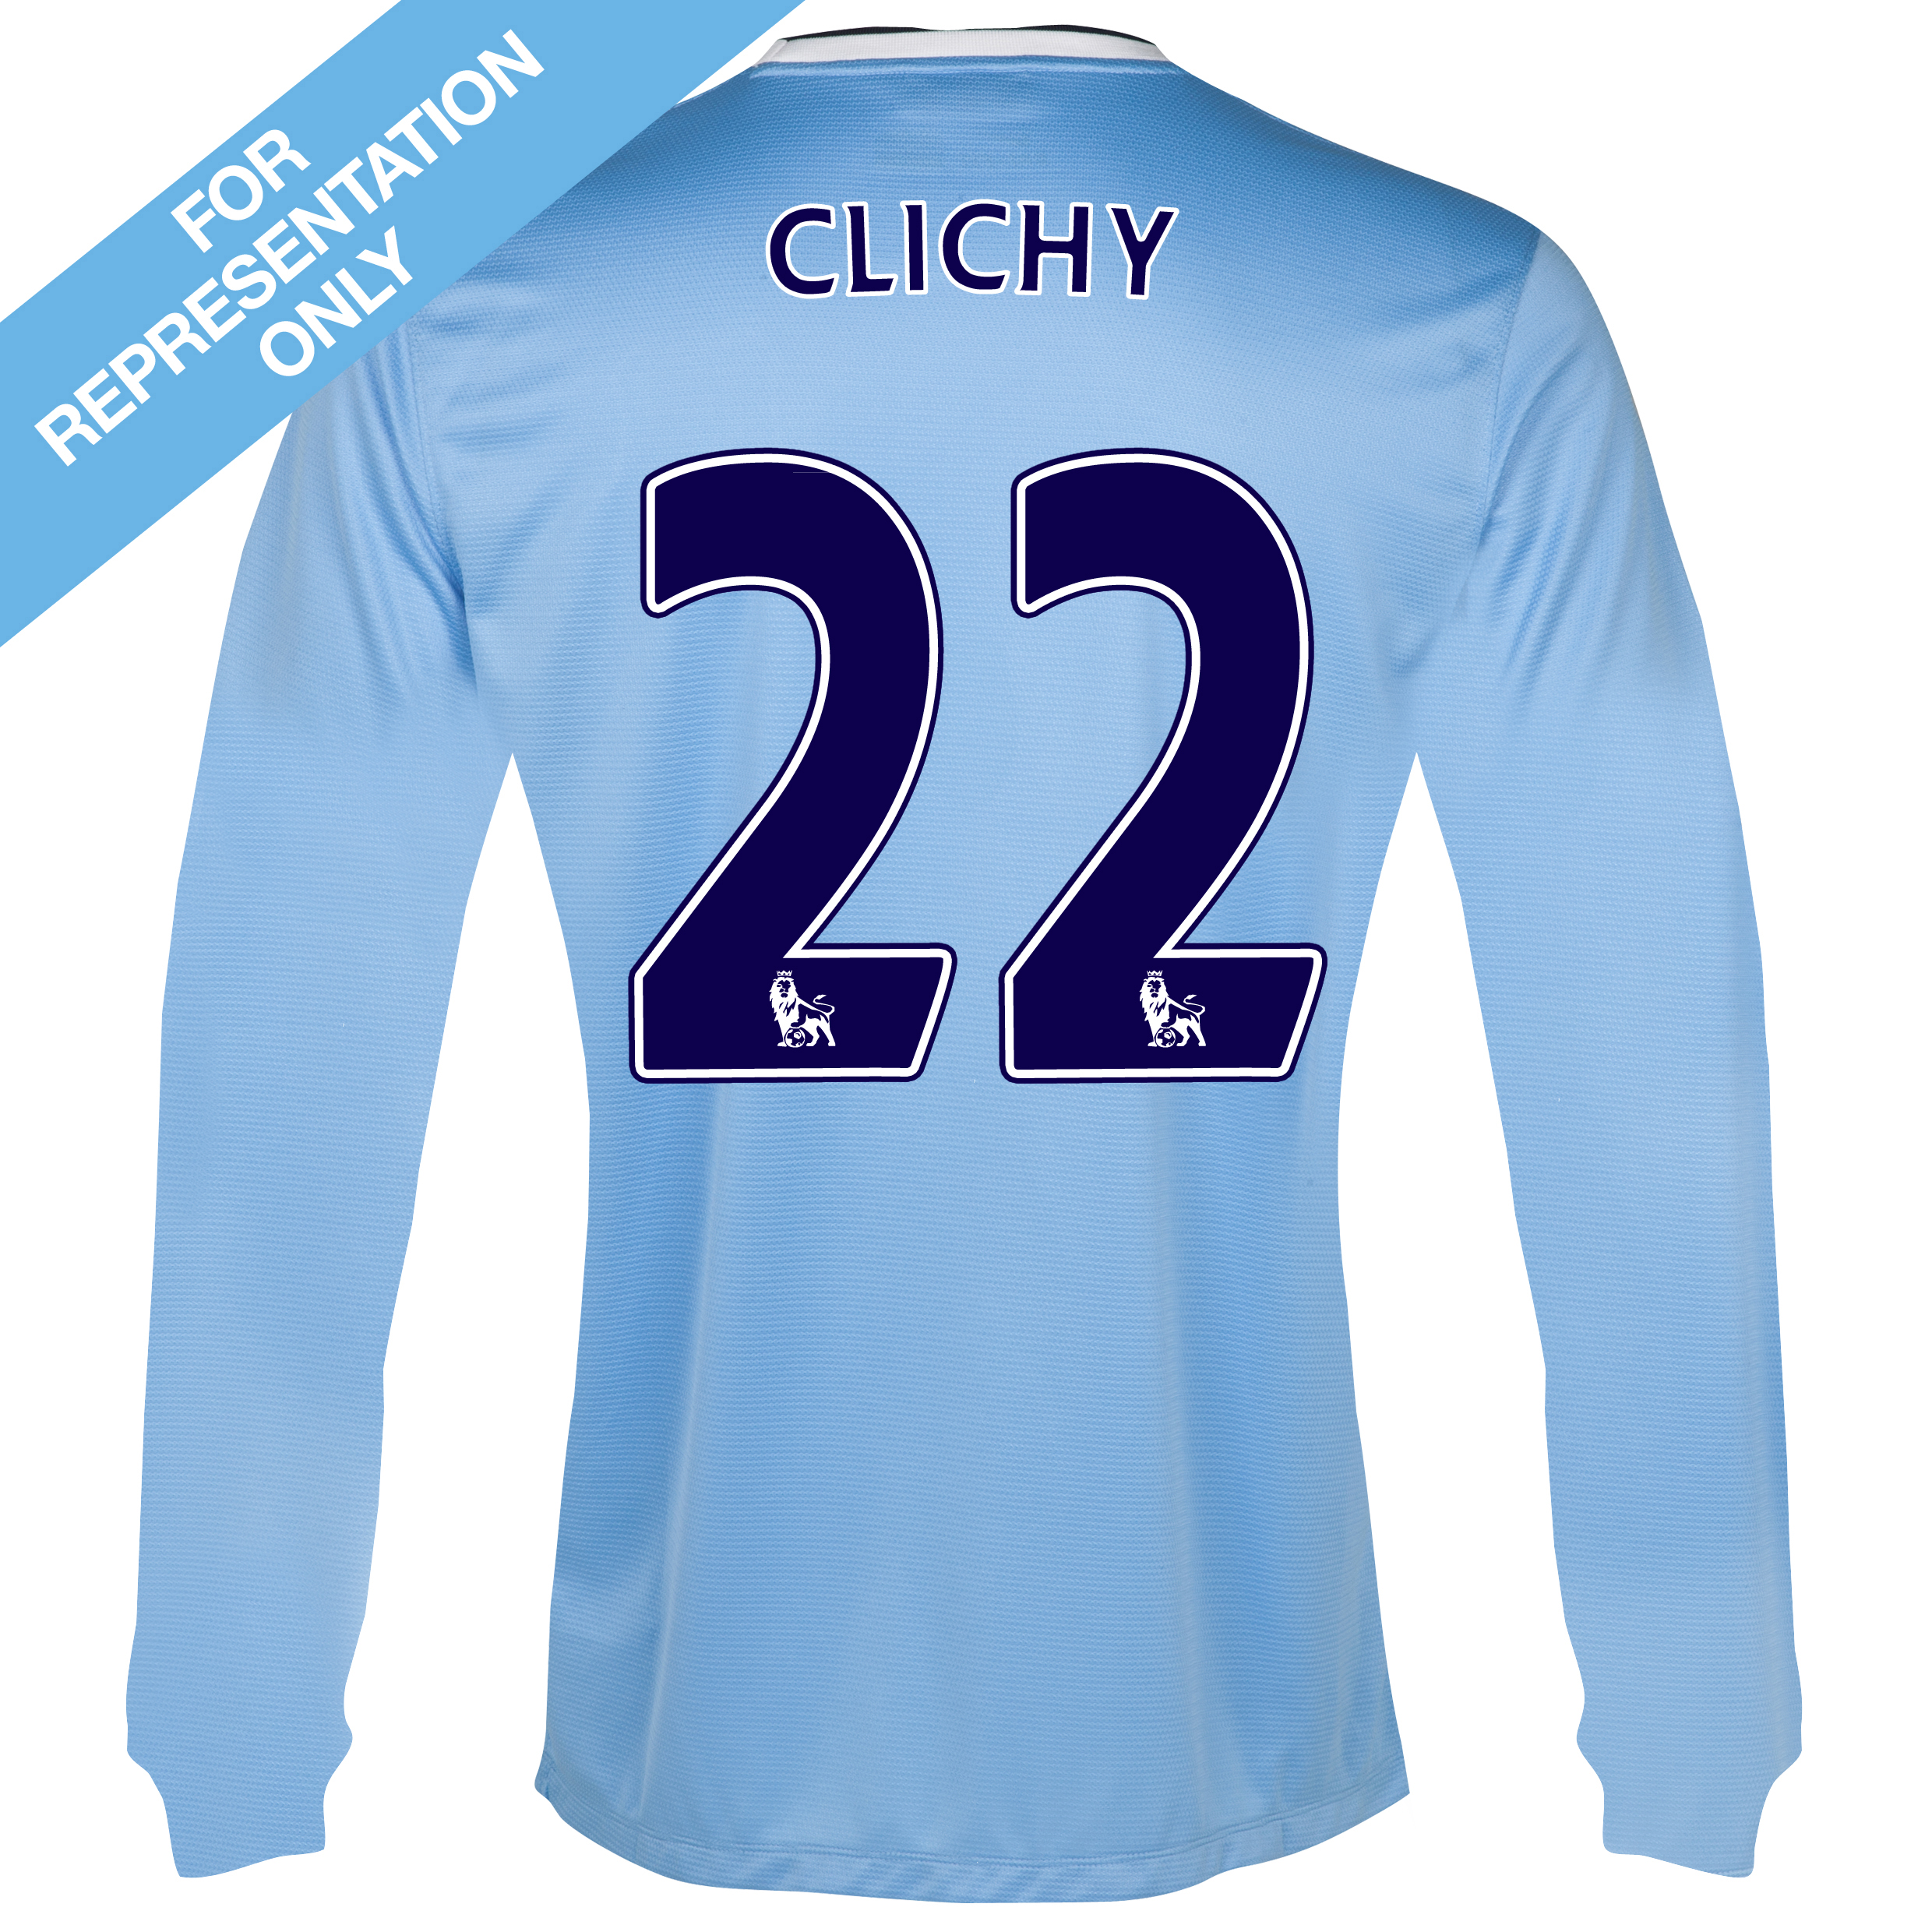 Manchester City Home Shirt 2013/14 - Long Sleeved - Junior with Clichy 22 printing